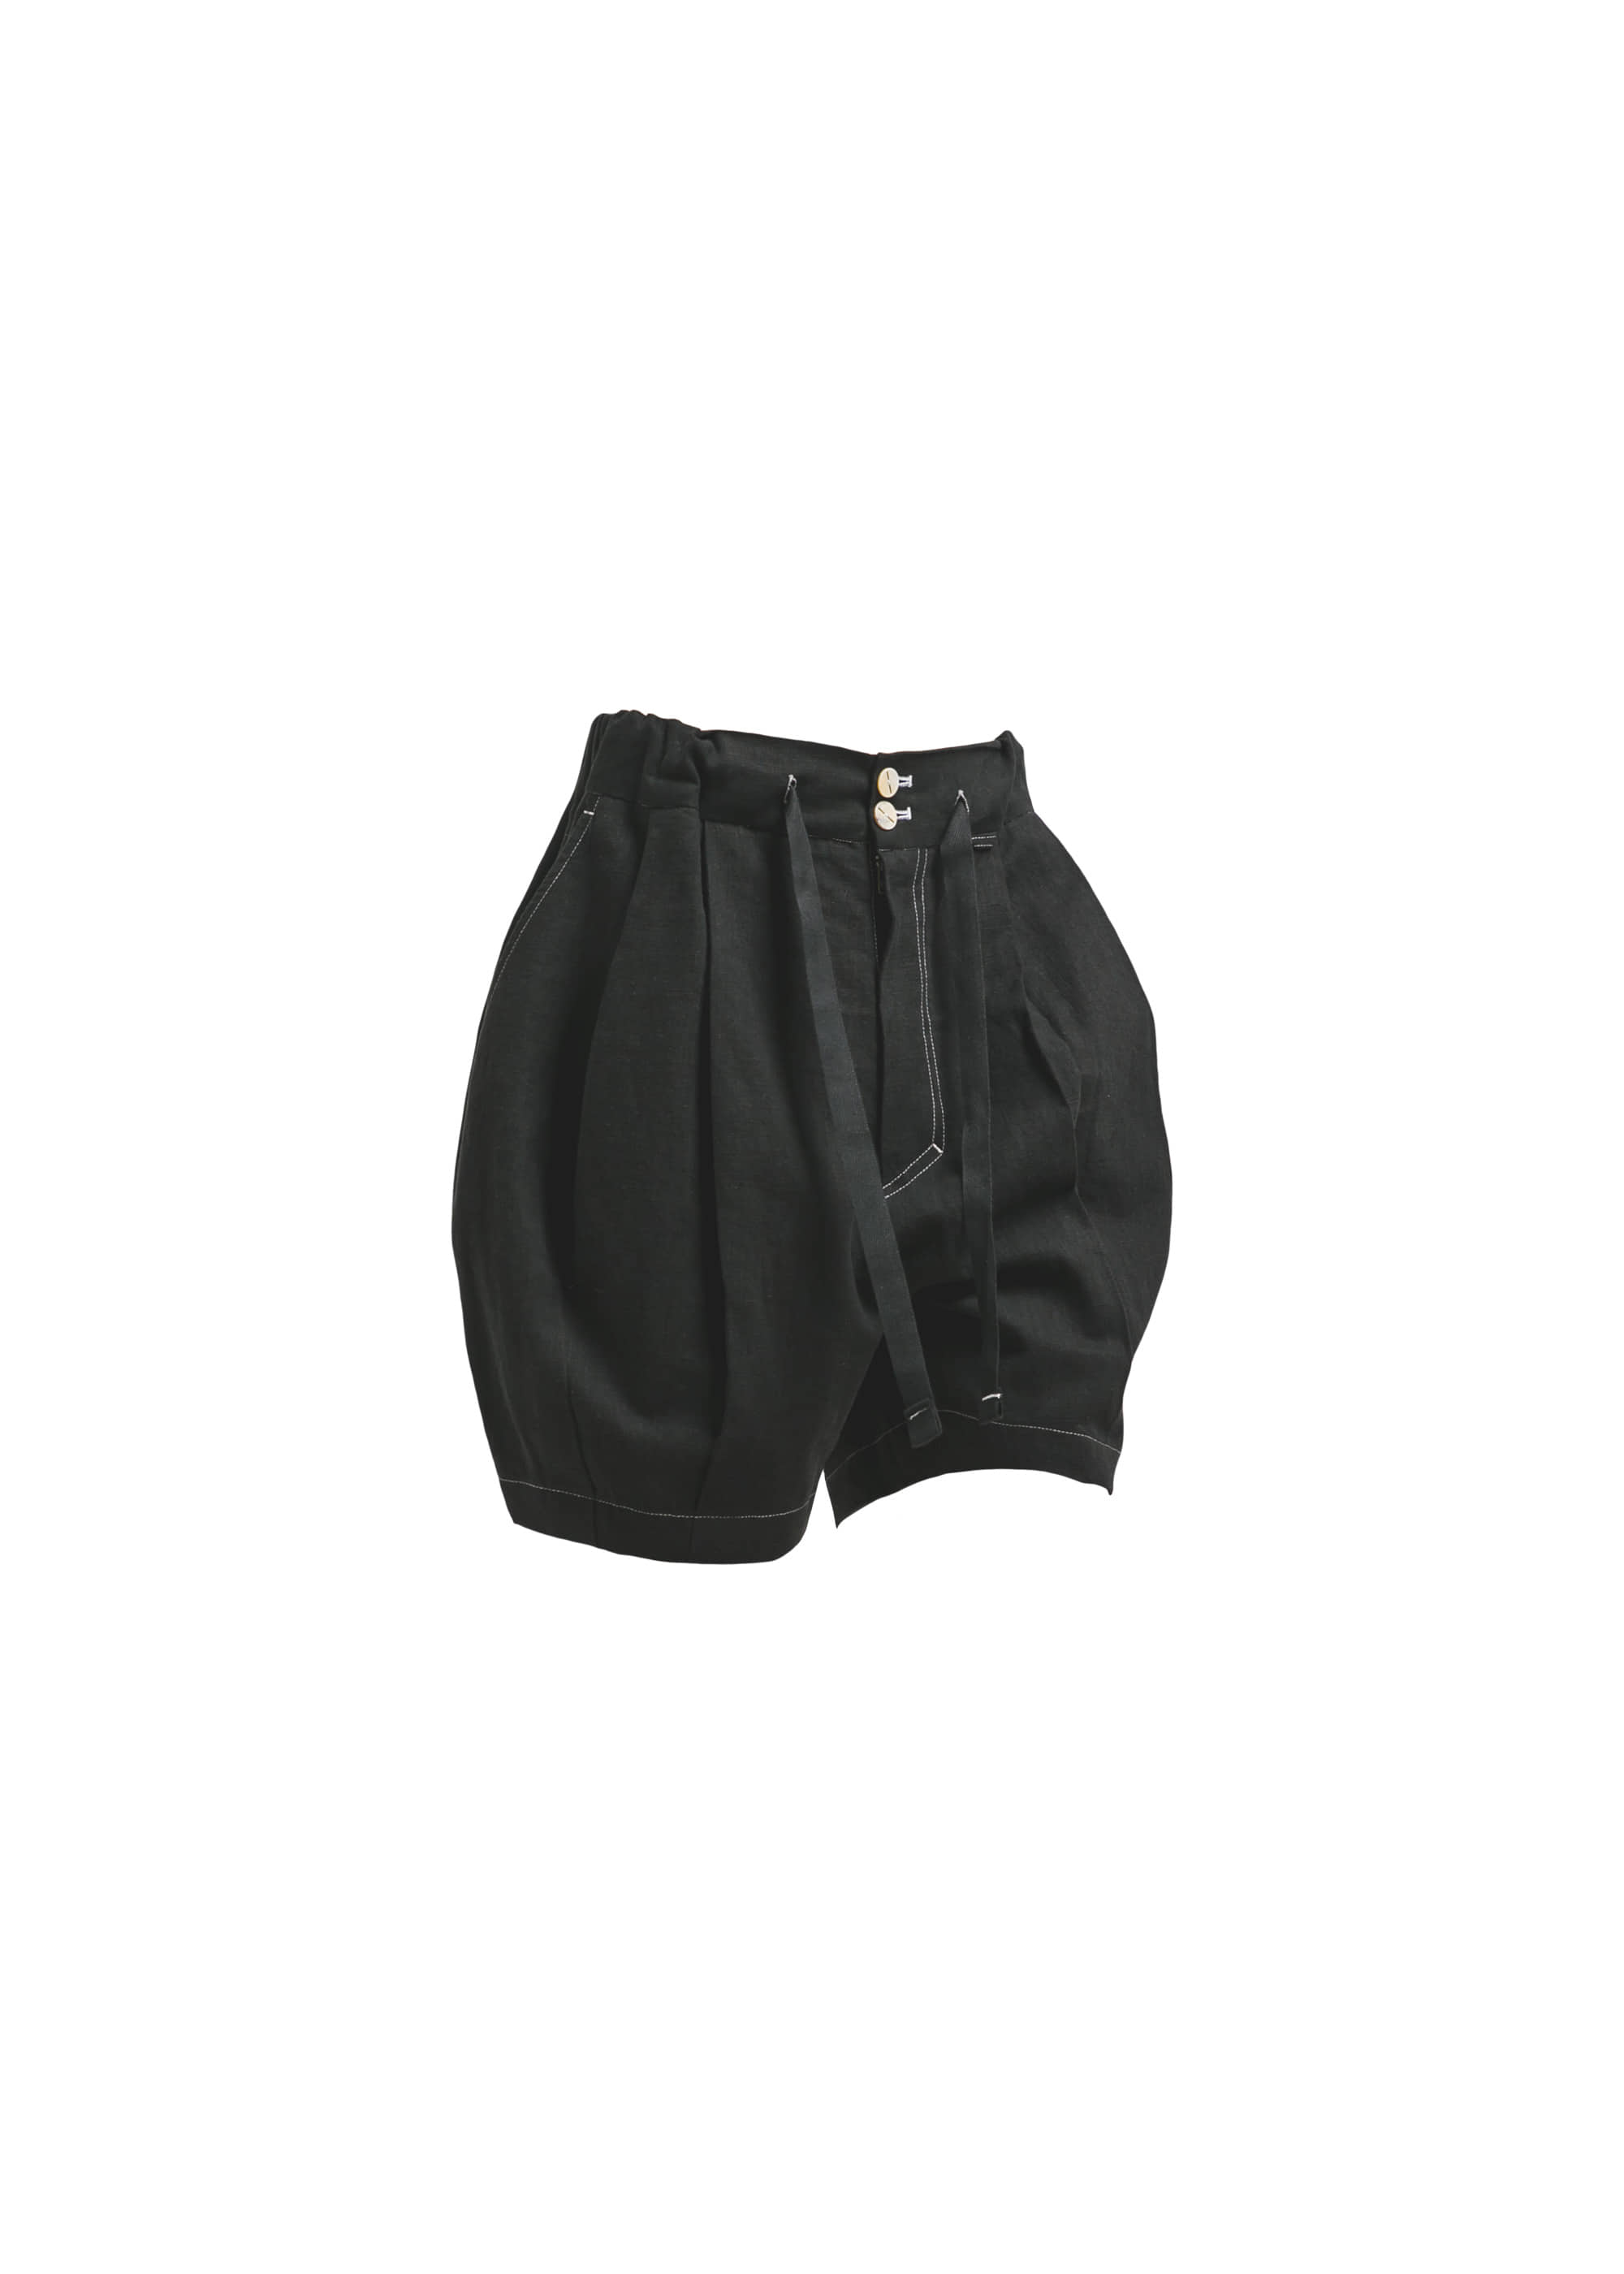 [AG] Linen Balloon Shorts - Black